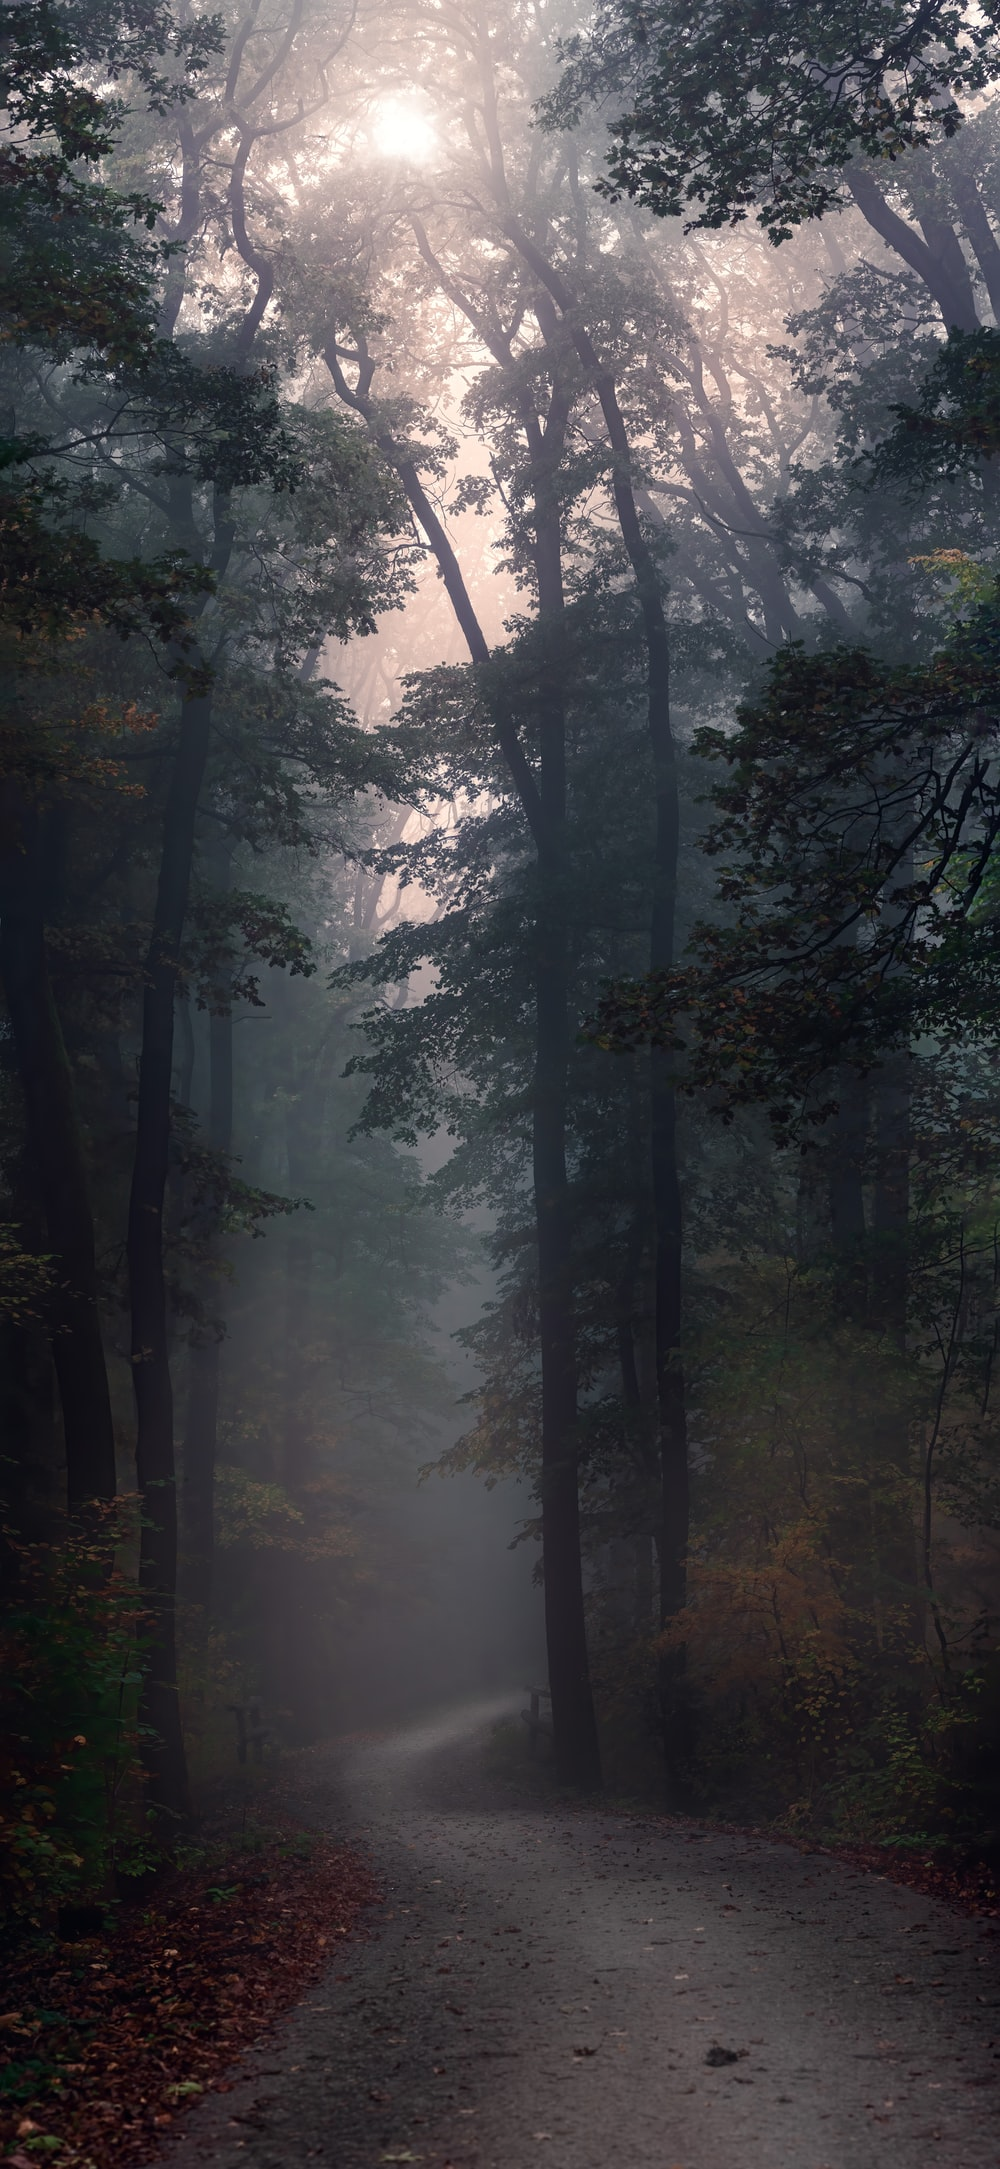 road surrounded with green trees in foggy day